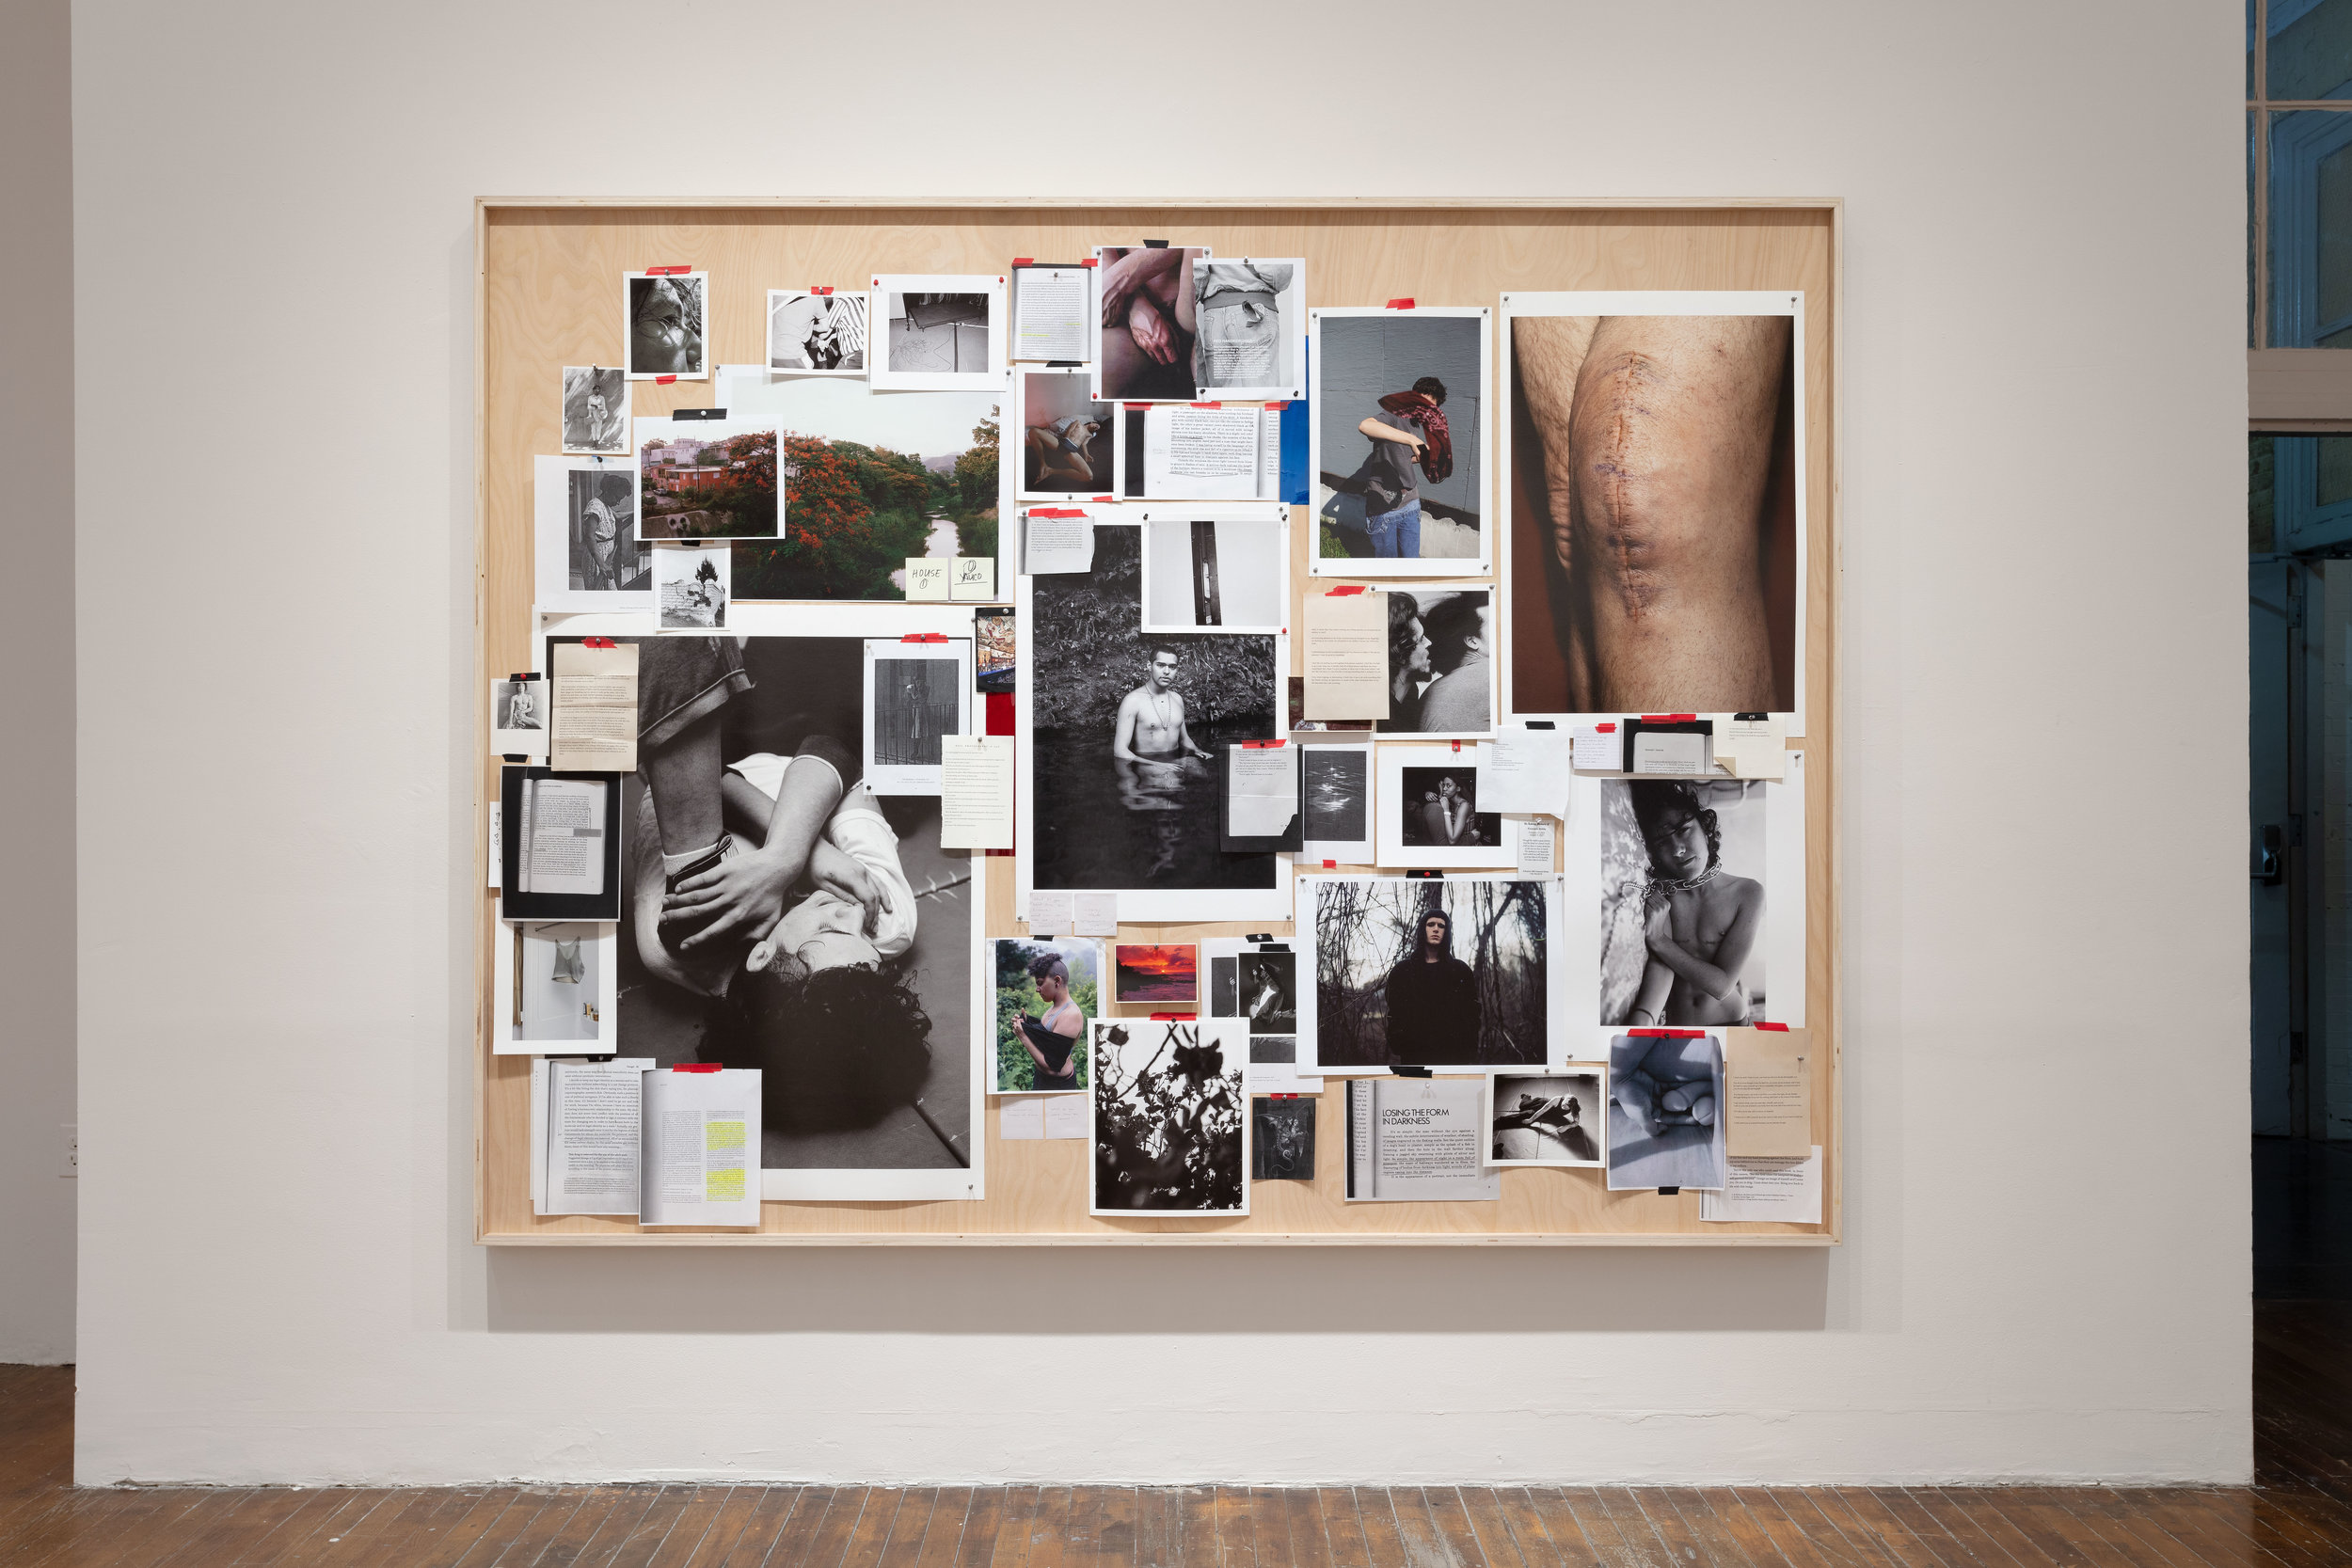 """ELLE PÉREZ. """"UNTITLED"""" (2018). MIXED MEDIA COLLAGE. 73 1⁄2 × 96 1⁄2 × 3 INCHES. IMAGE COURTESY OF THE ARTIST, 47 CANAL, NEW YORK, AND MOMA PS1, NEW YORK. PHOTO: JOERG LOHSE"""